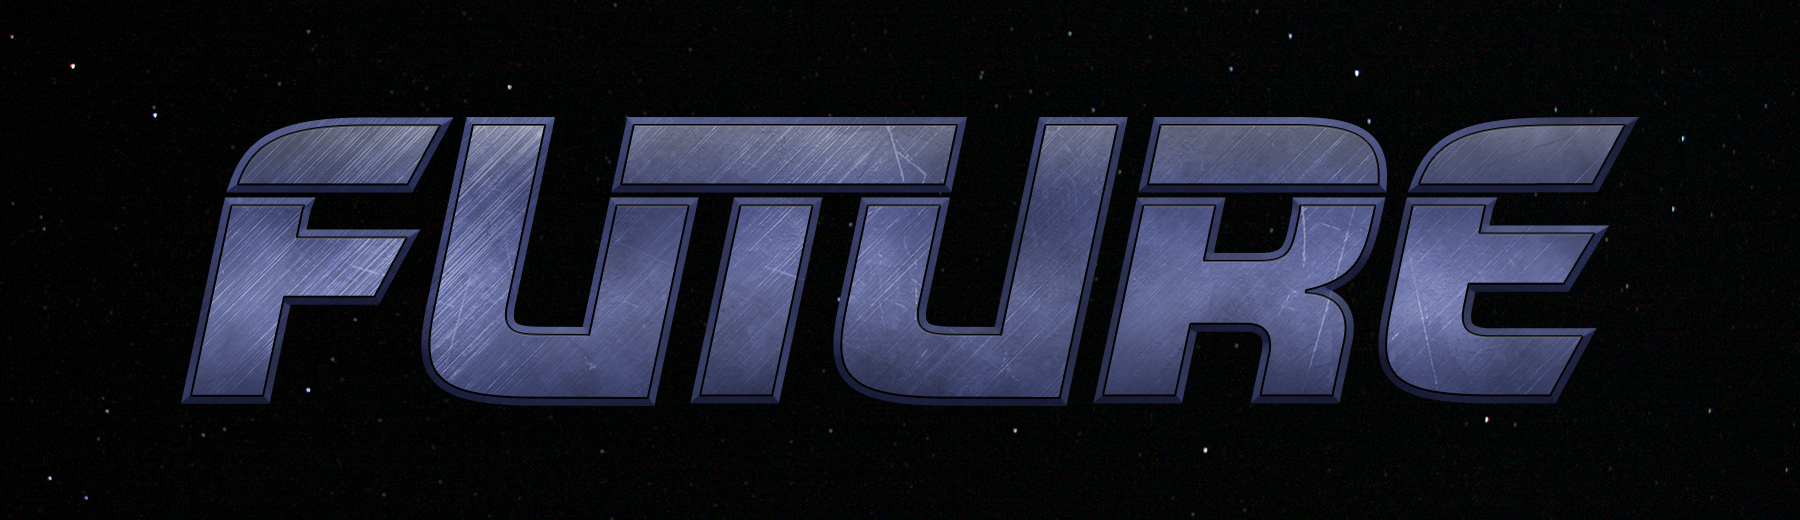 How to make your text look futuristic typeset in the future welcome to the future buycottarizona Gallery